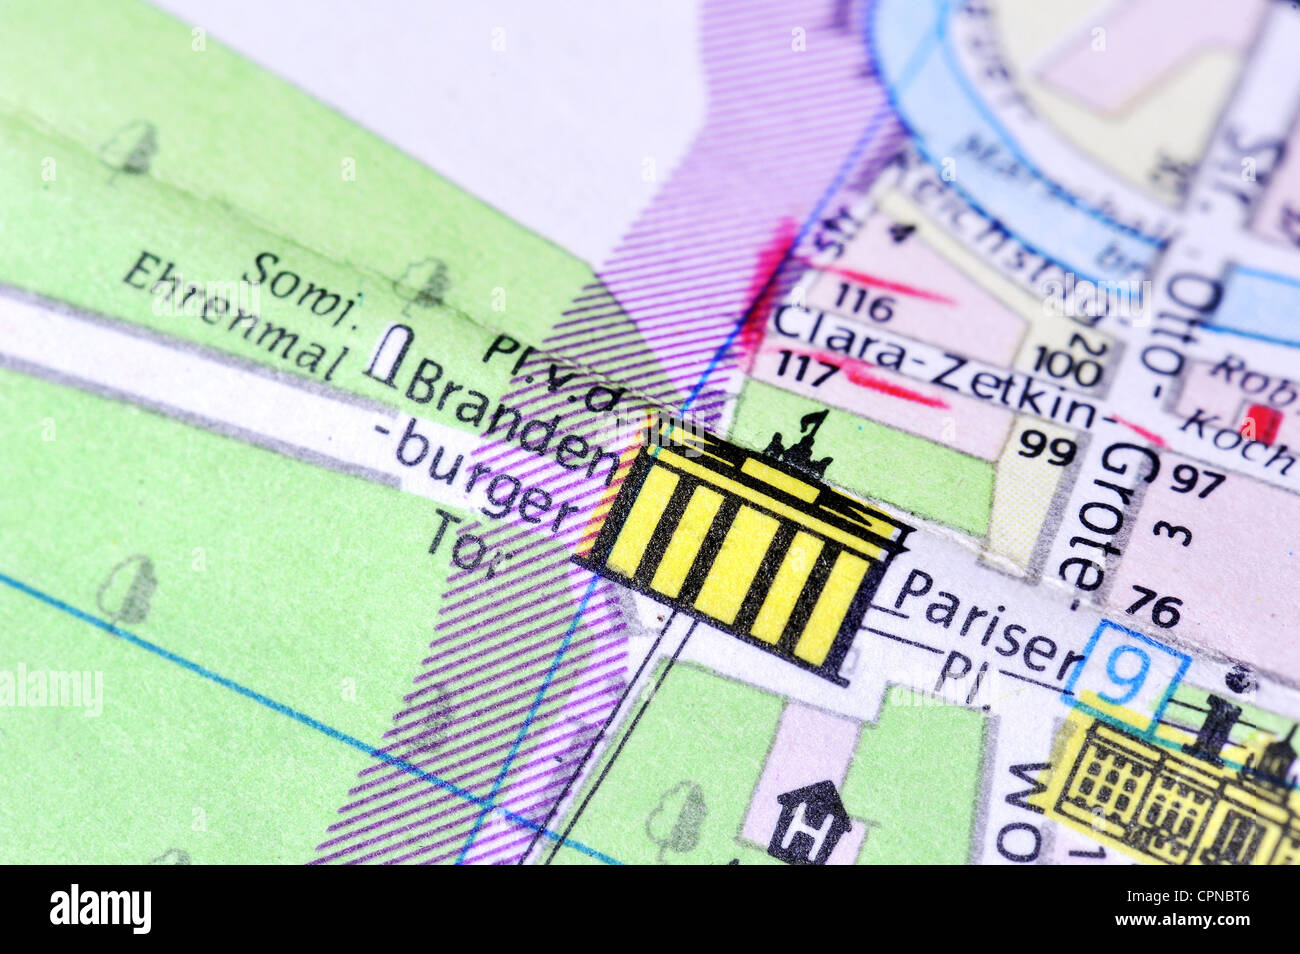 Map Of Germany 1980.Cartography City Map Berlin Detail Brandenburg Gate Pariser